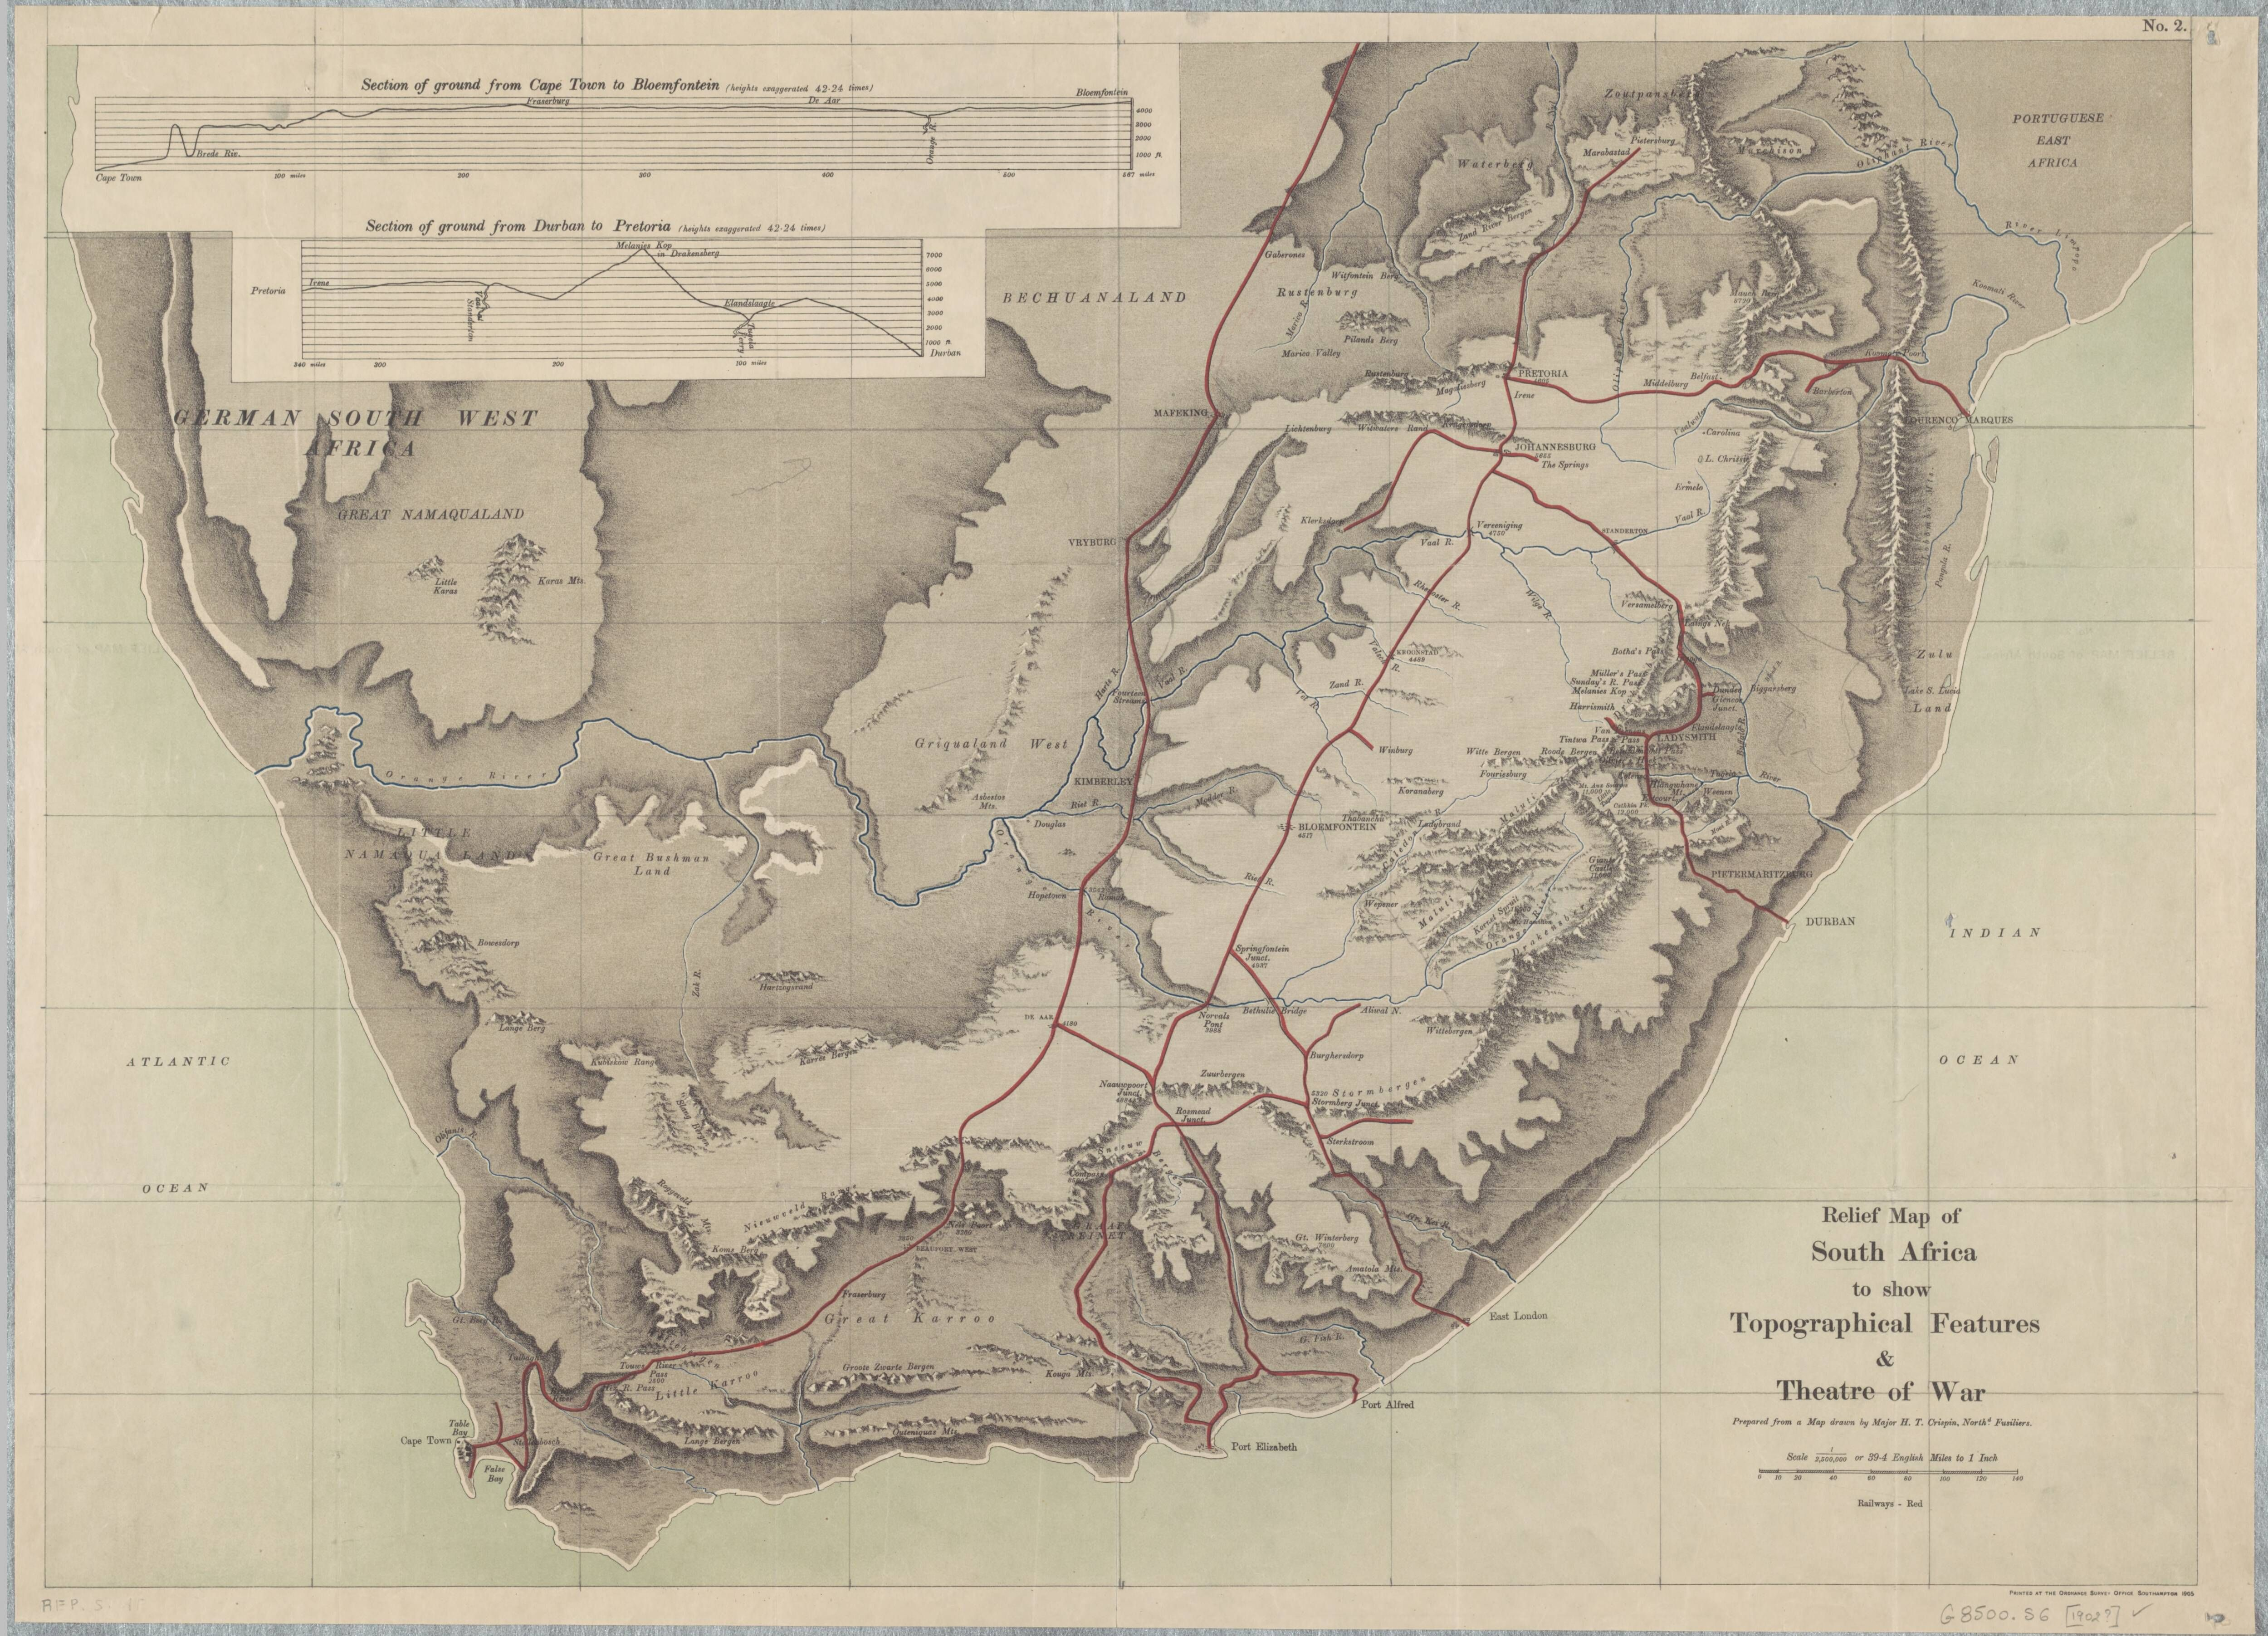 Relief Map Of Southern Africa.1905 Relief Map Of South Africa To Show Topographical